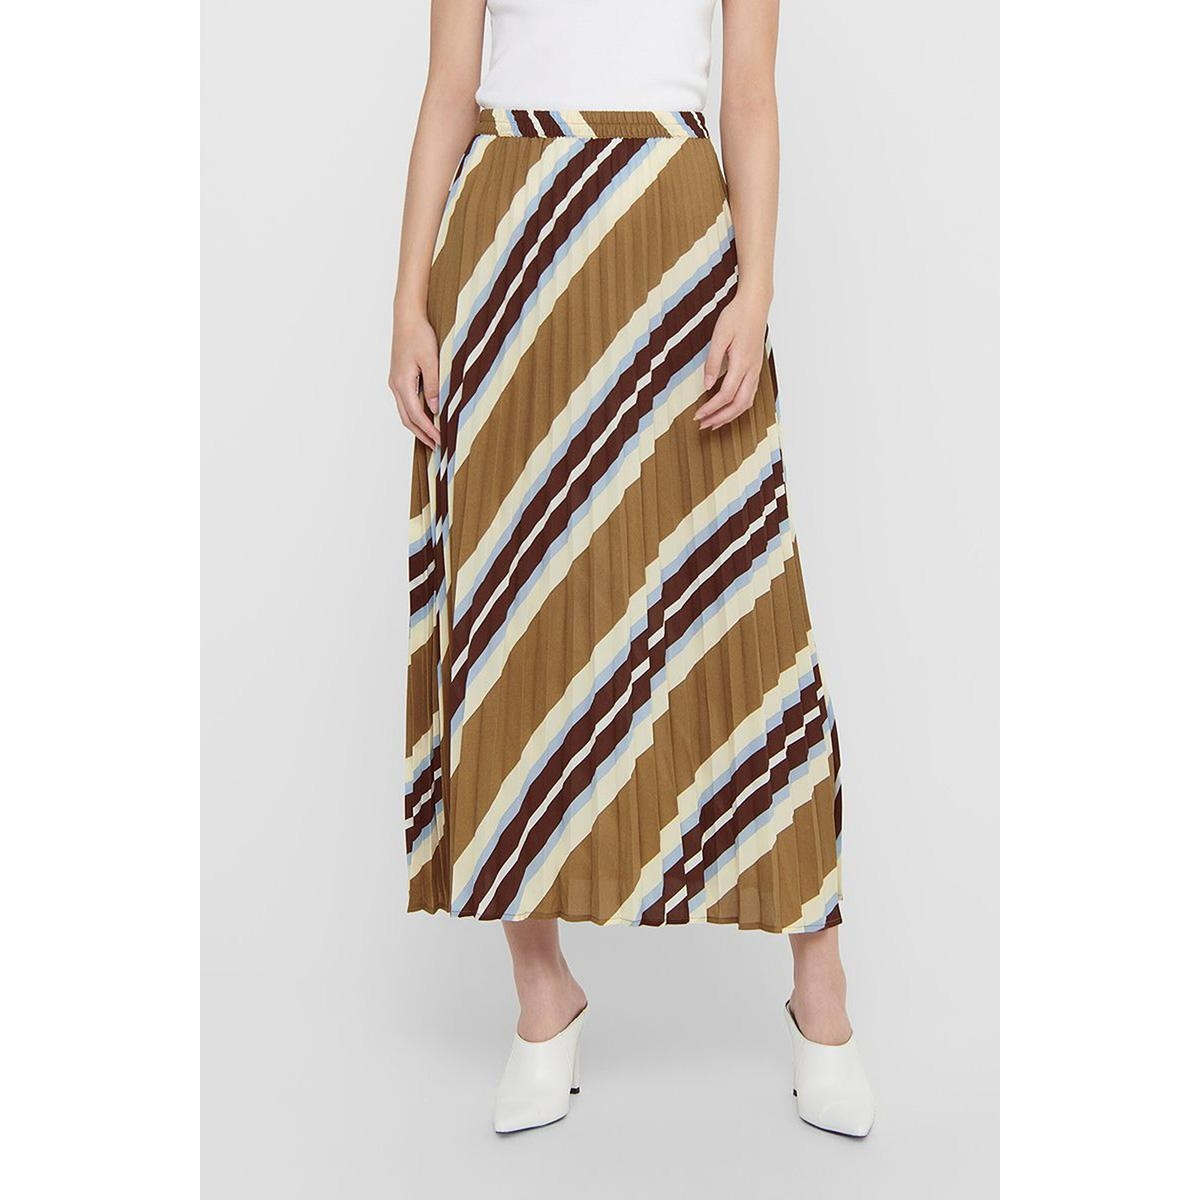 onlalma poly plisse skirt aop wvn 15200097 only rok toasted coconut/sahara str